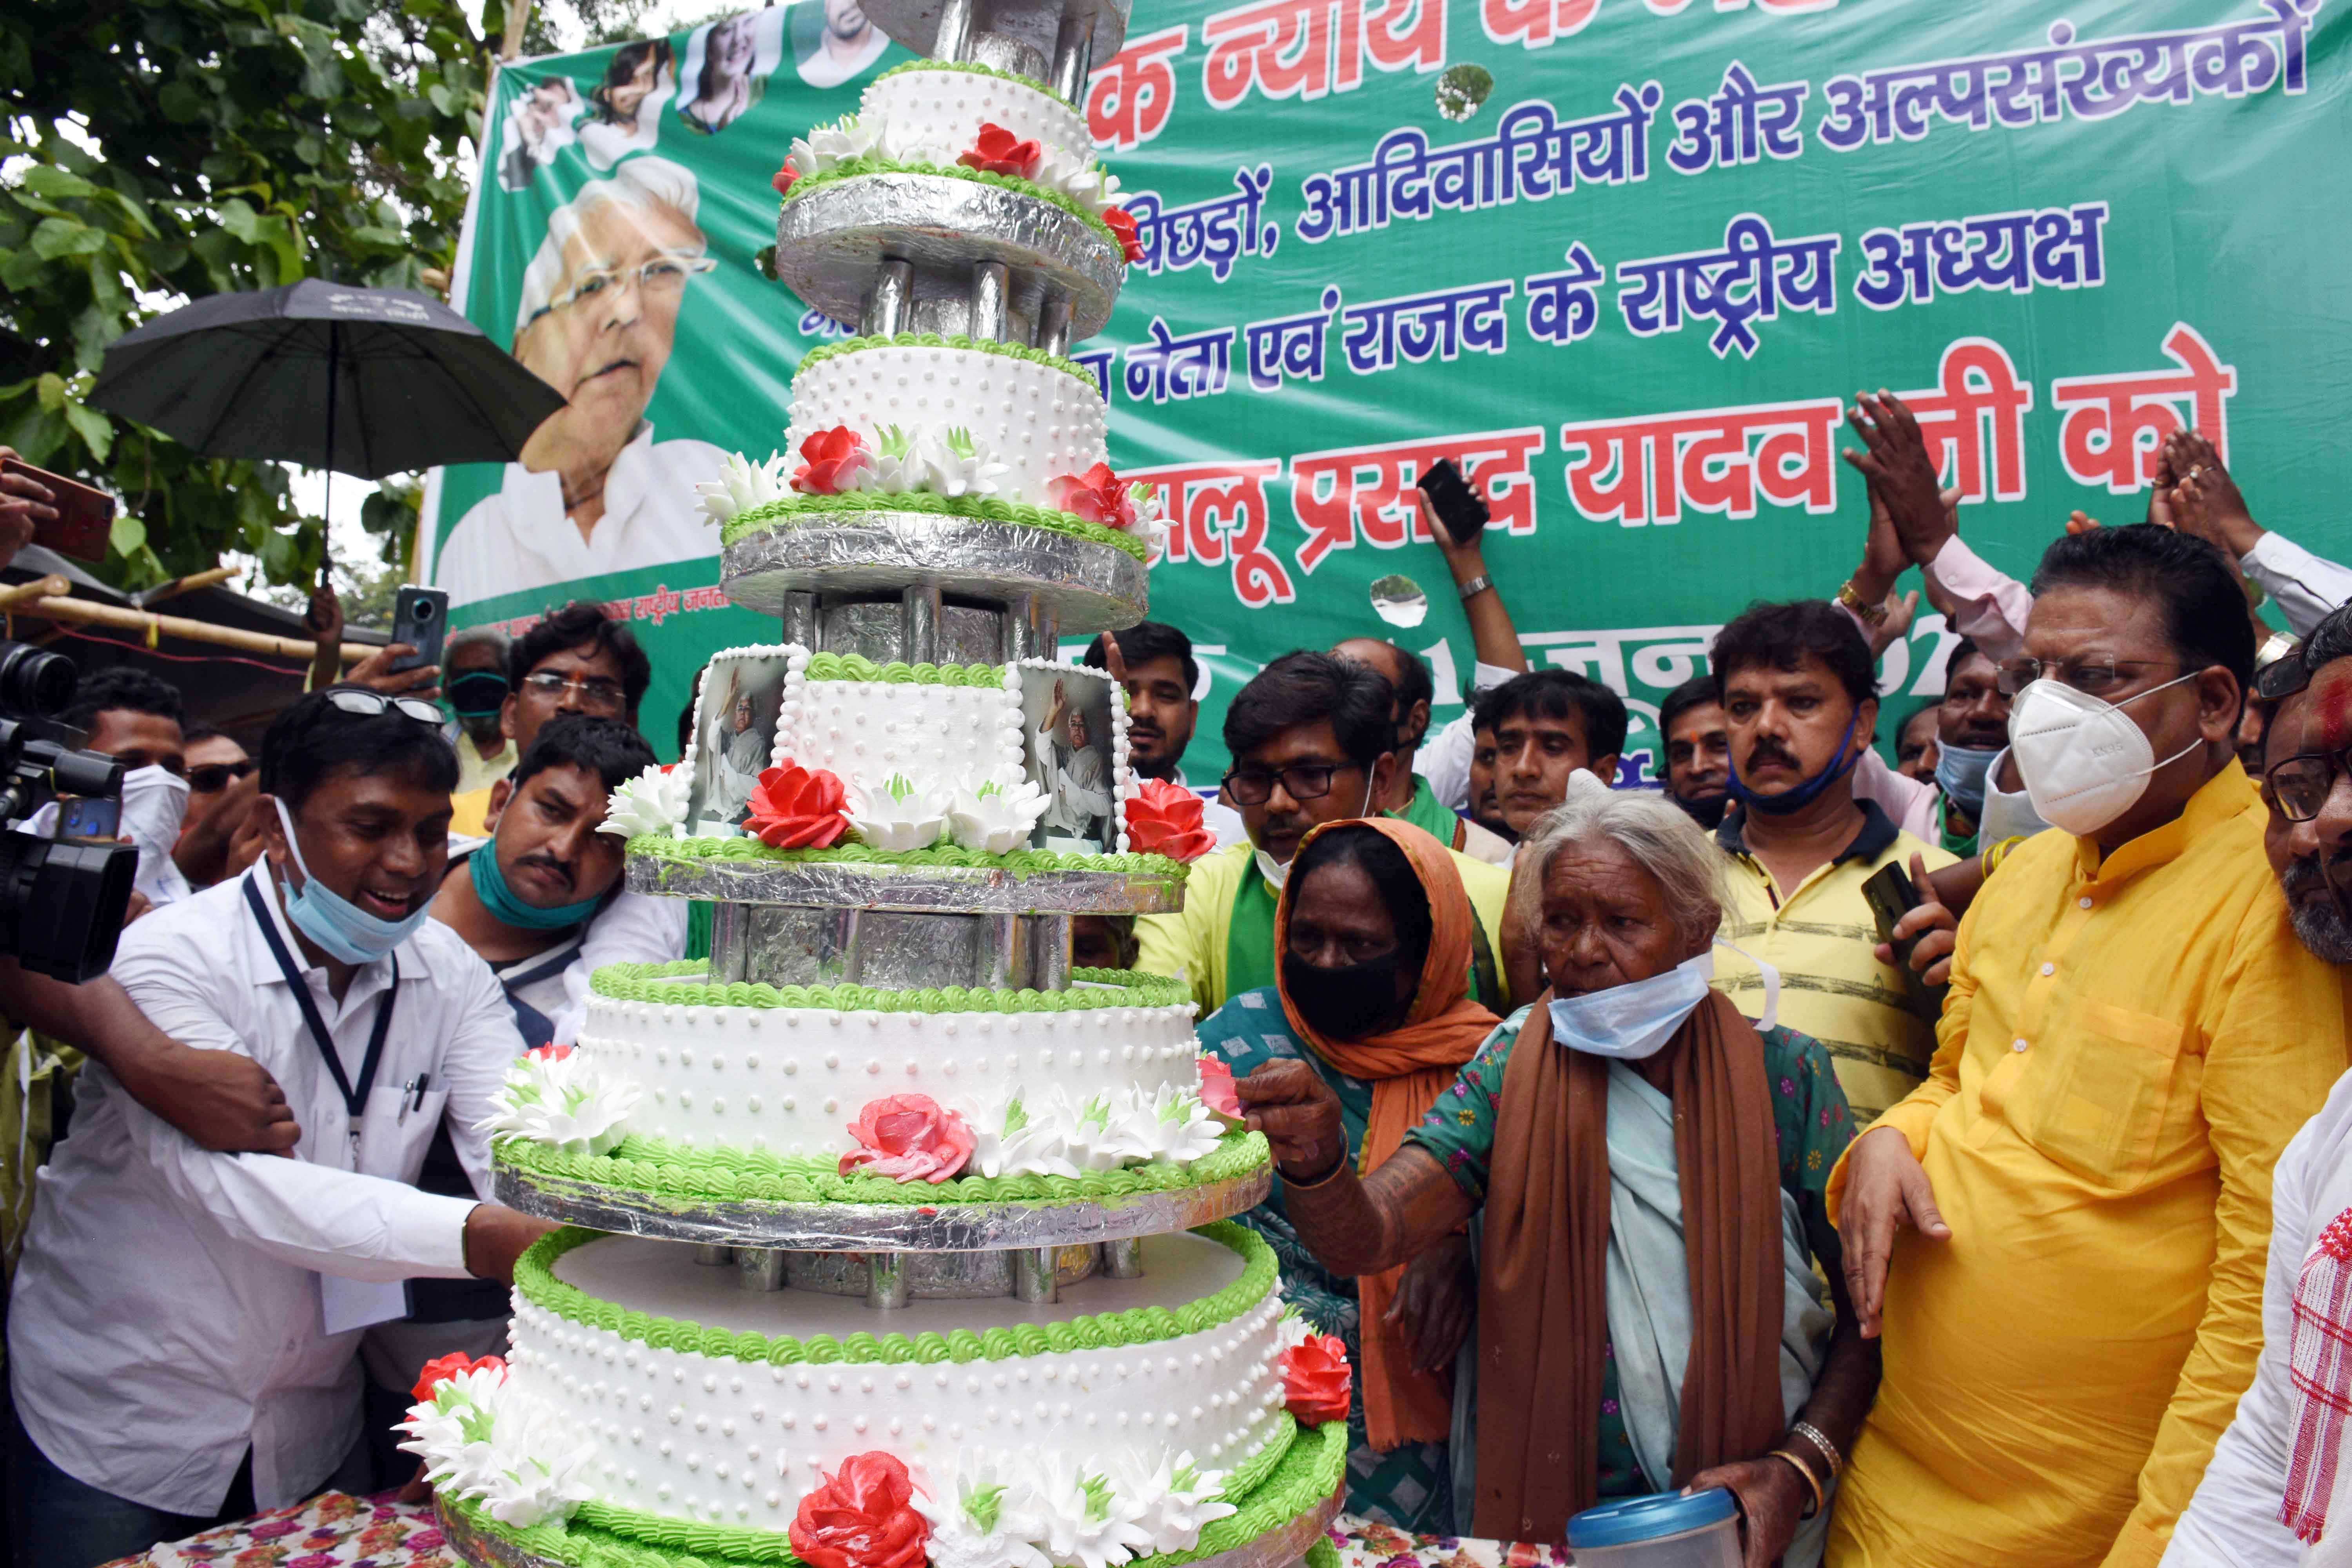 RJD workers and supporters celebrate Lalu Prasad's 73rd birthday at RIMS by cutting a 73-pound cake on RIMS campus in Ranchi on Thursday